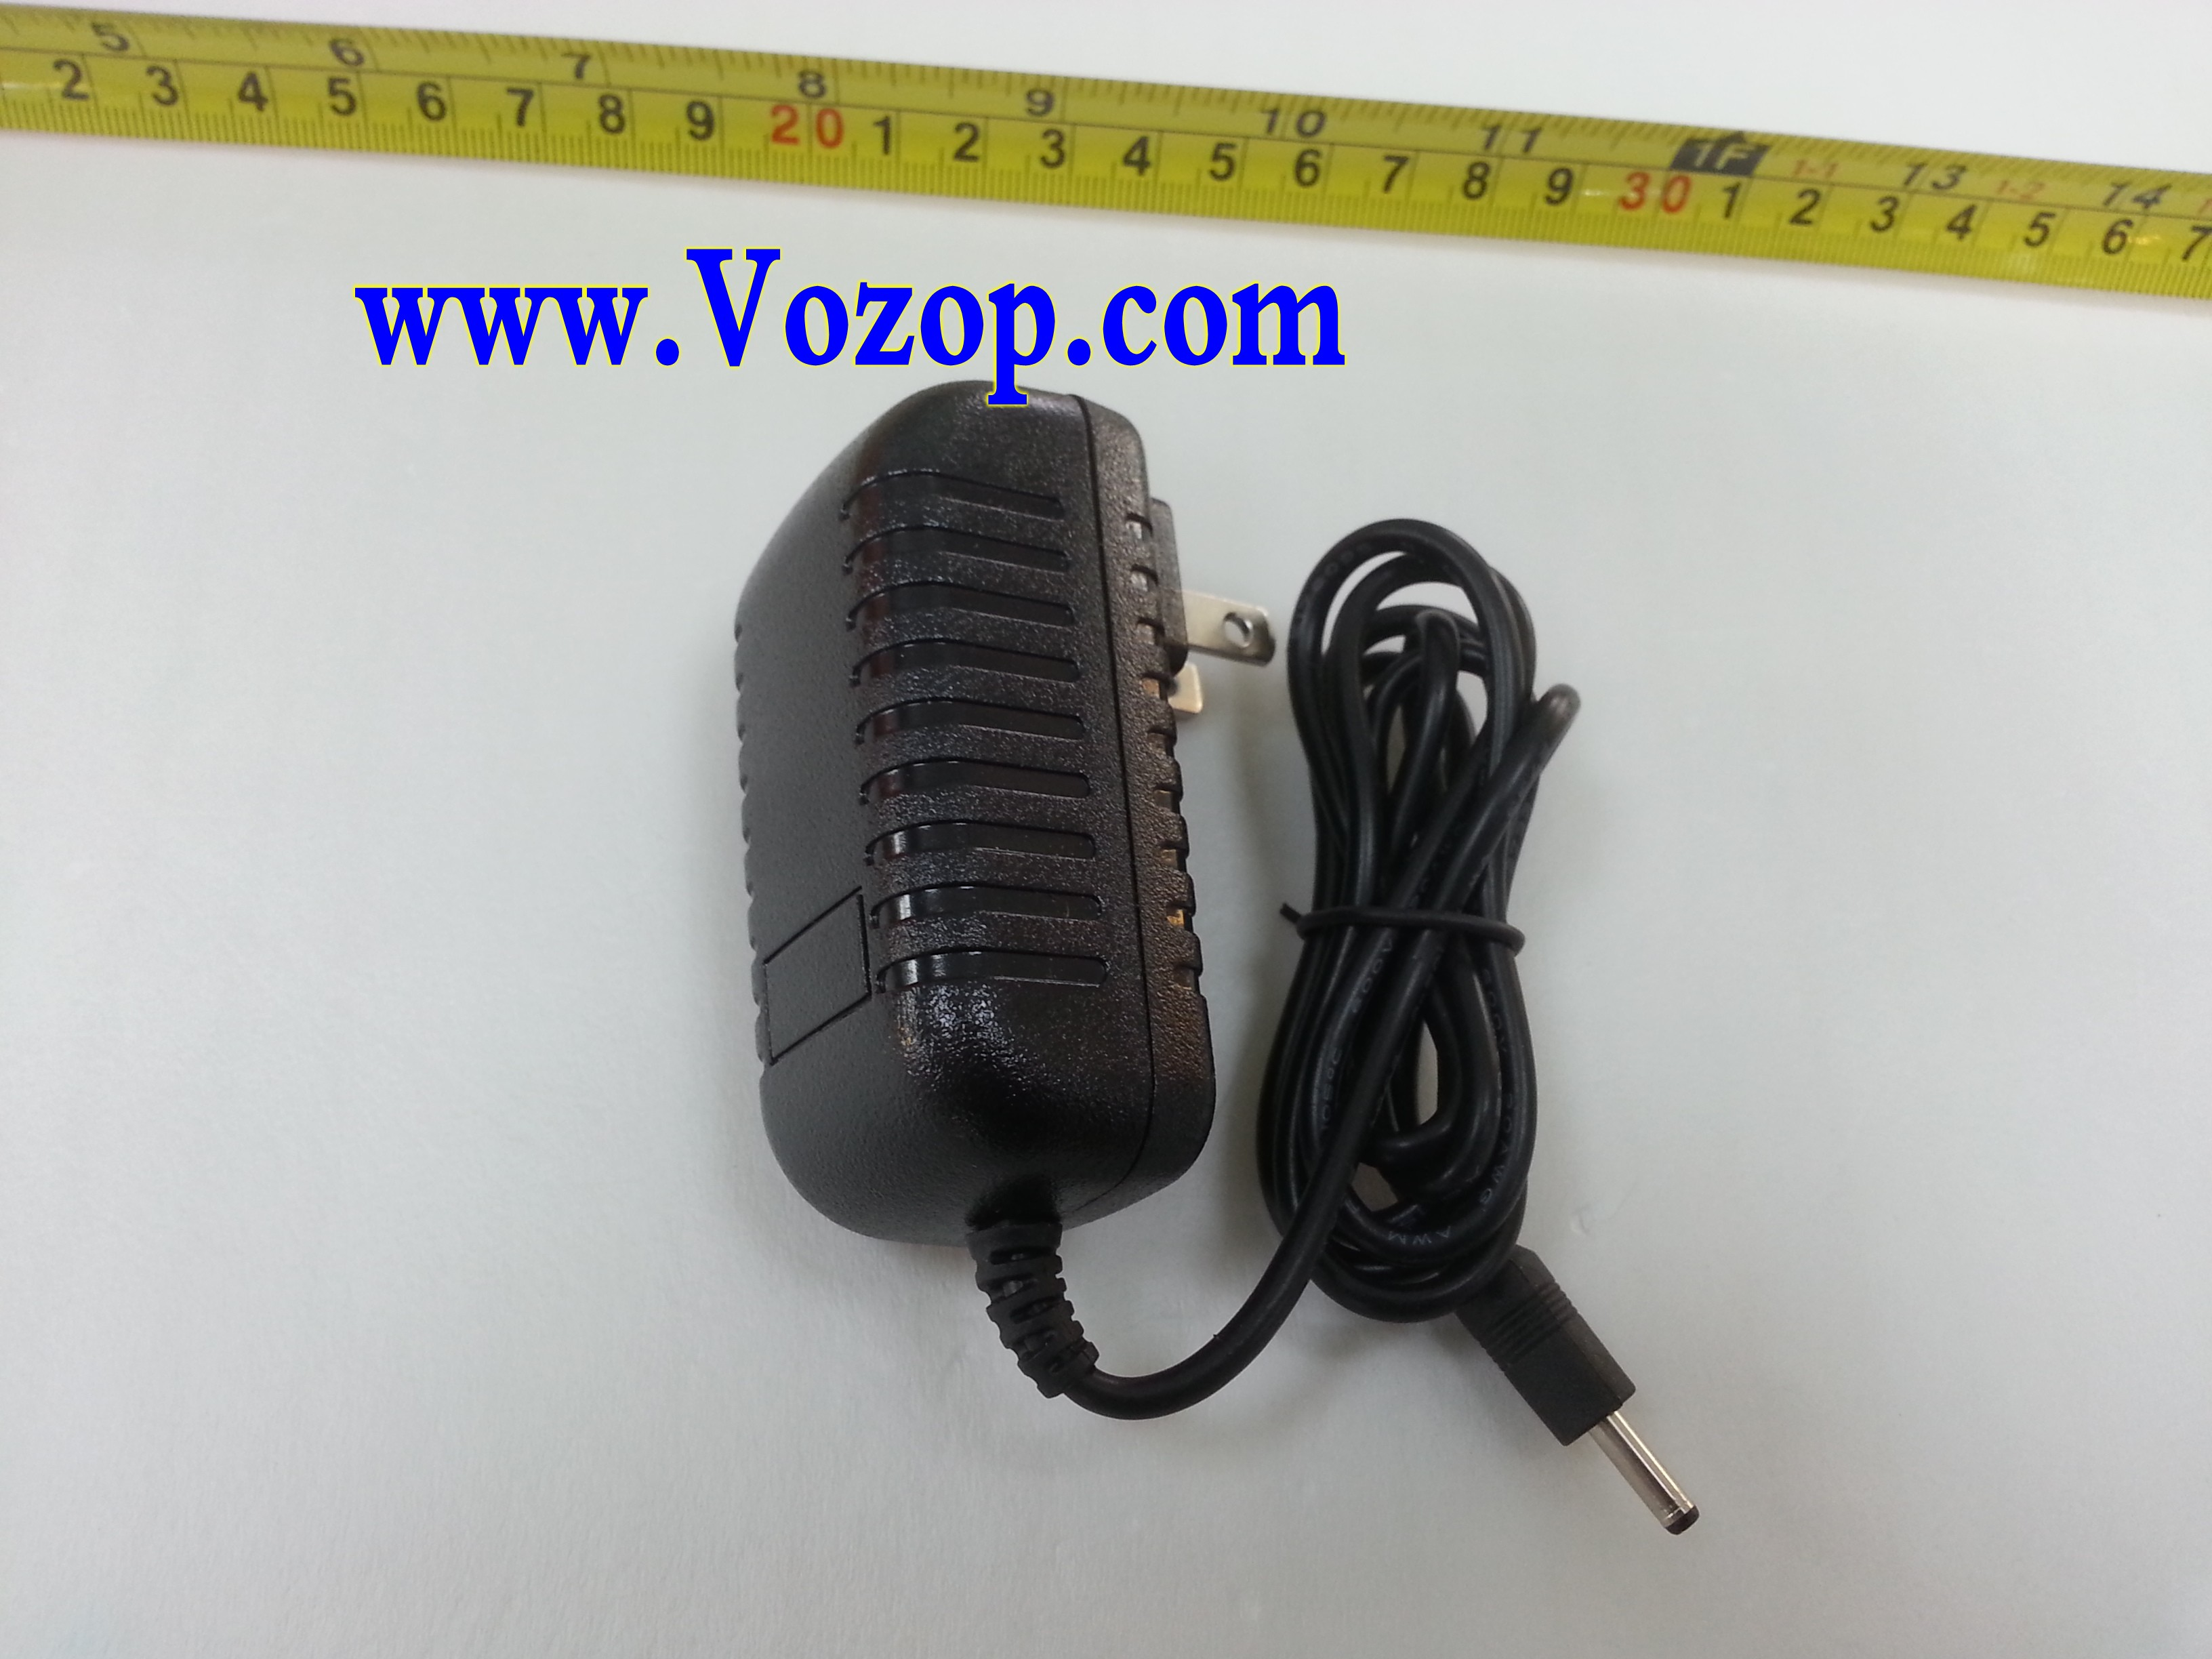 DC_5V_2A_Power_Adapter_AC_to_DC_Power_Supply_led_driver